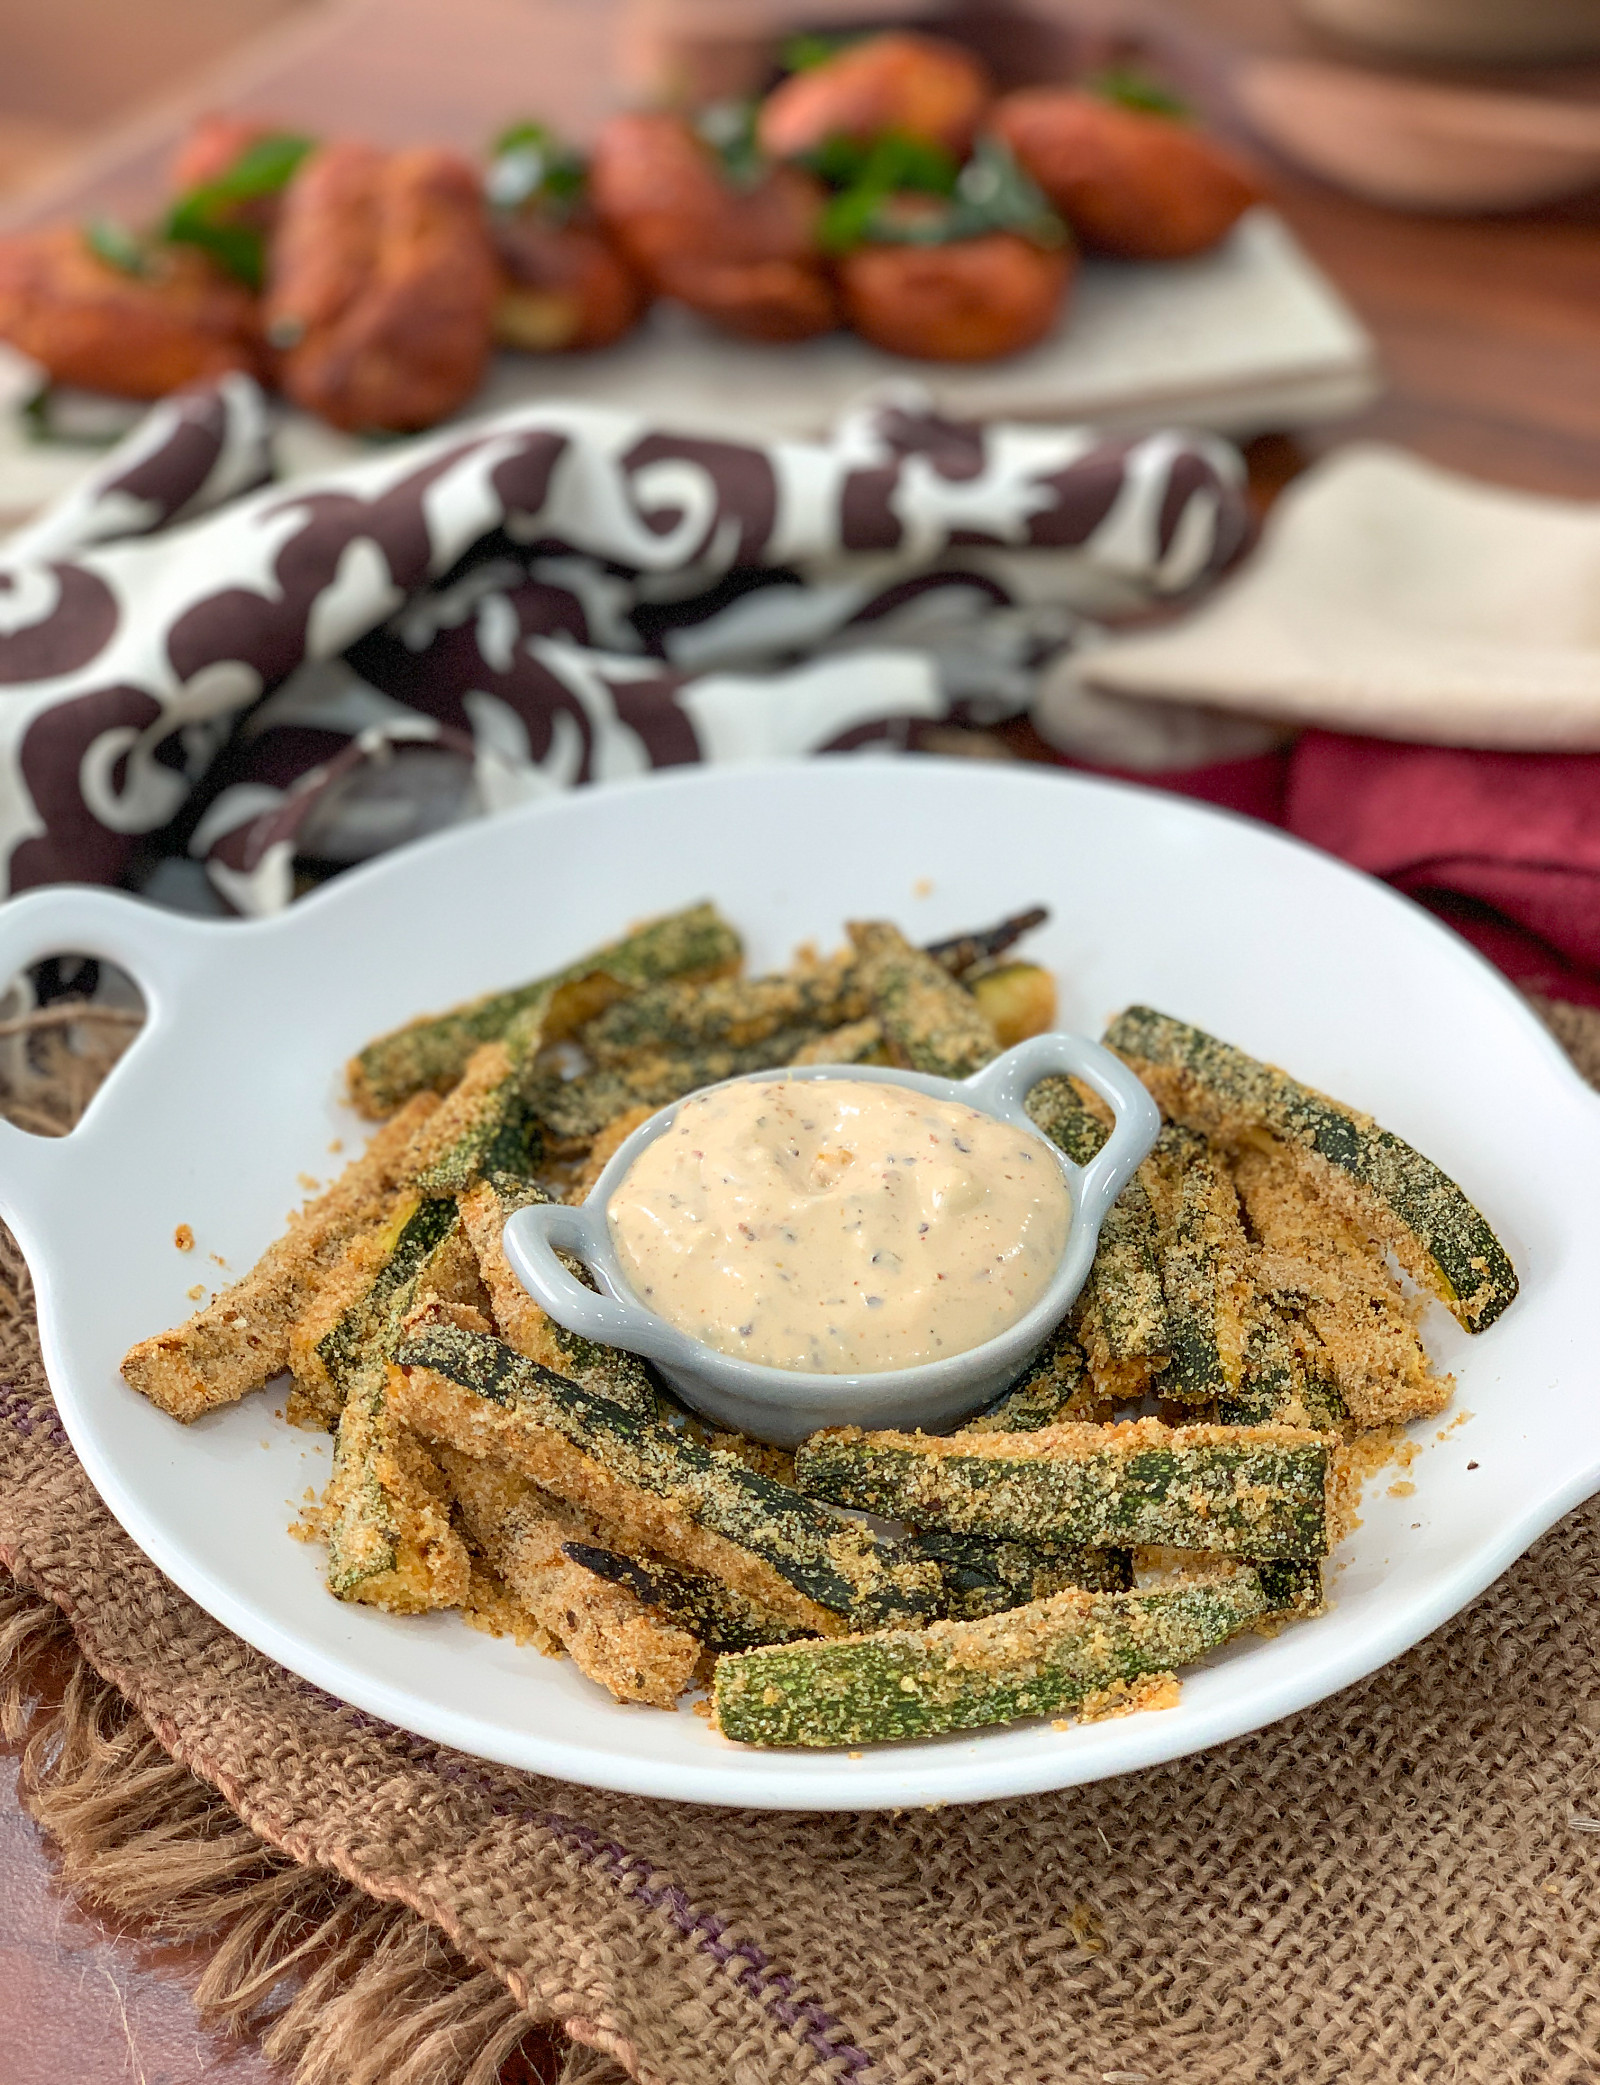 Oven Baked Lemon & Herb Zucchini Fries Recipe